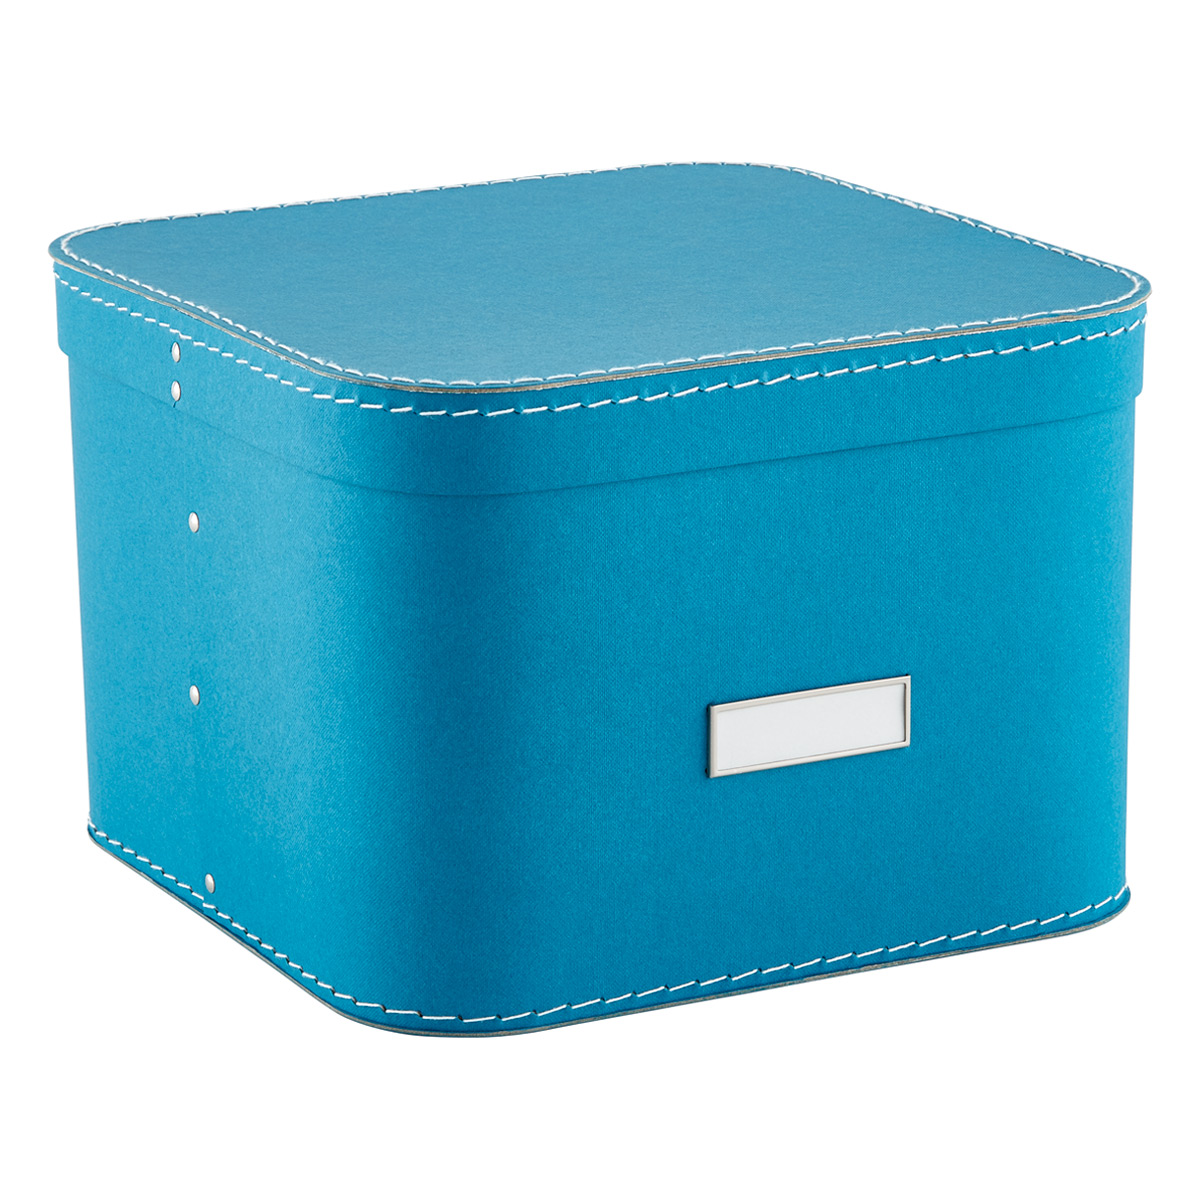 Delicieux Turquoise Oskar Storage Box With Lid